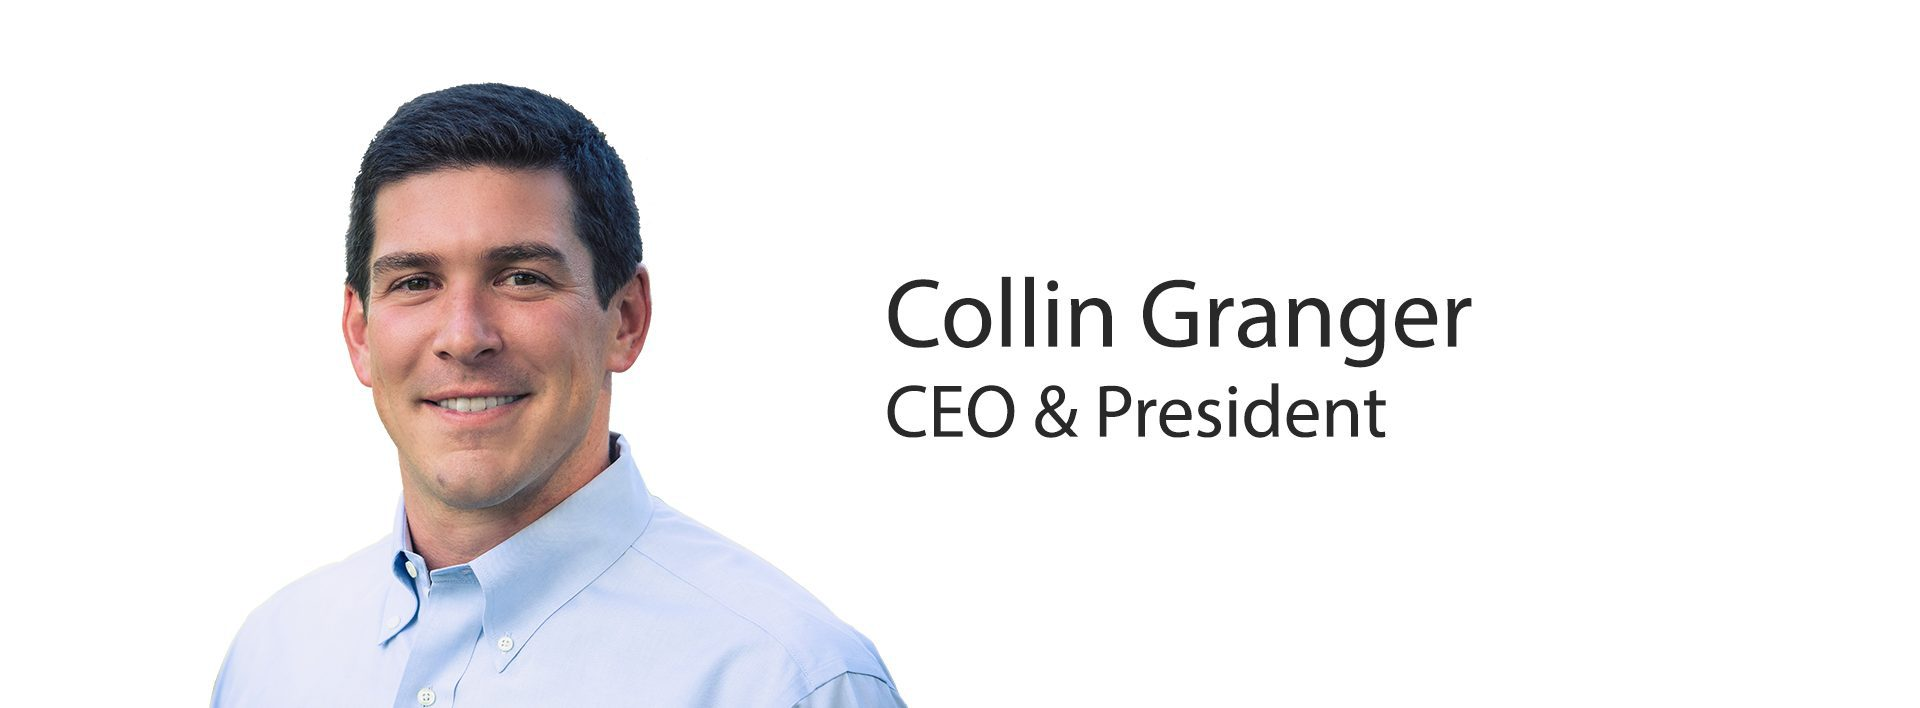 Collin Granger Named CEO and President of Mapcom Systems